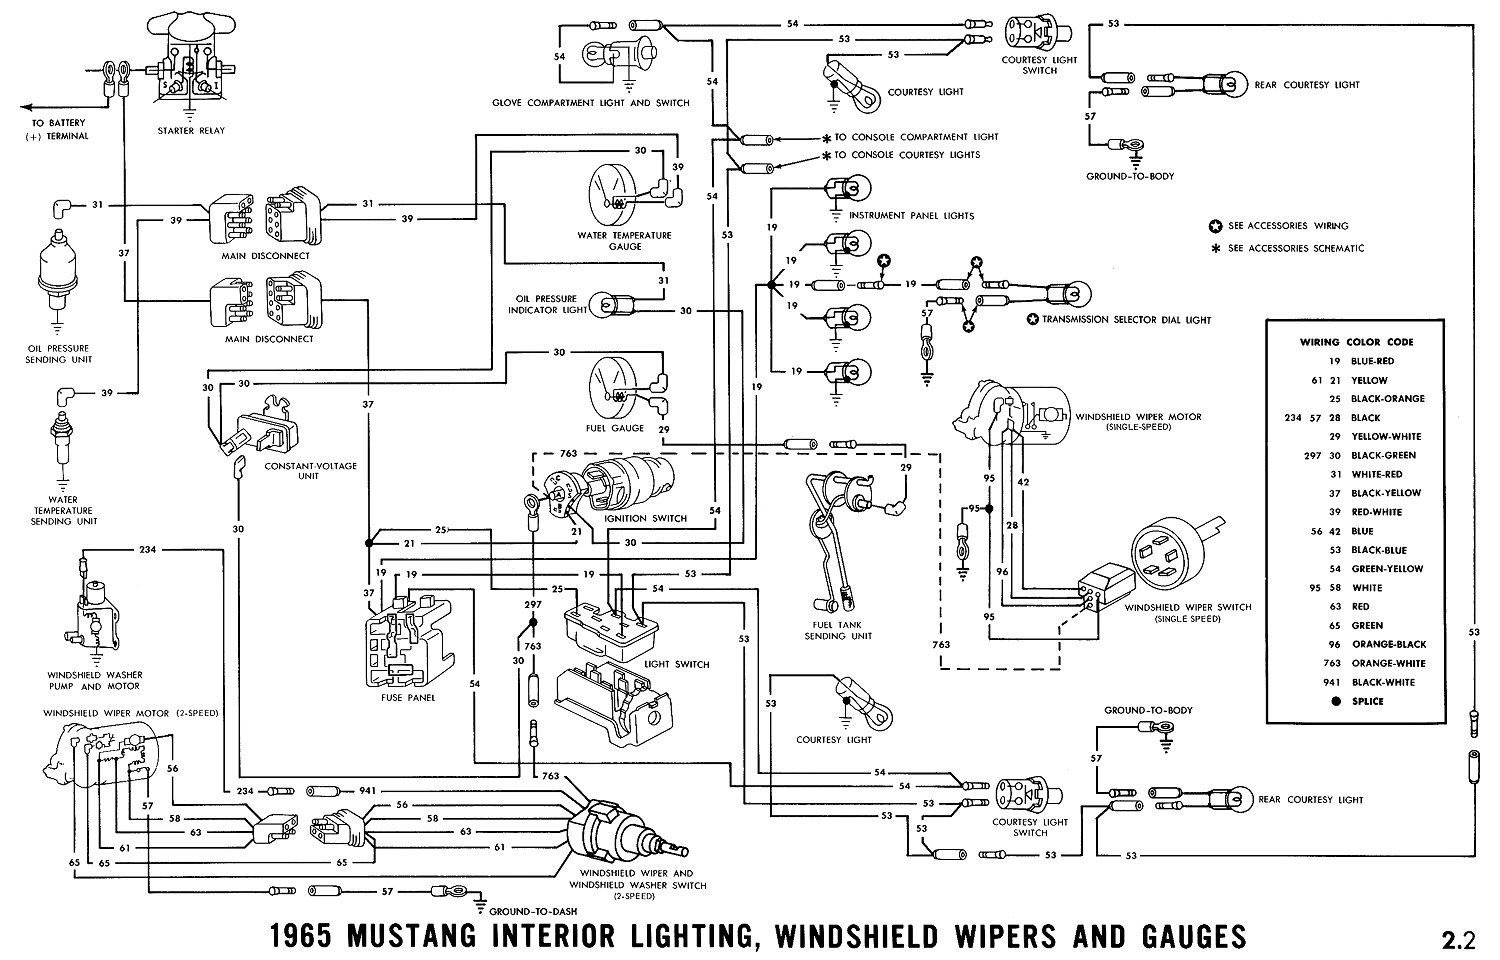 1965 Mustang Wiring Diagrams Average Joe Restoration A Vacuum Plug Oil Pressure